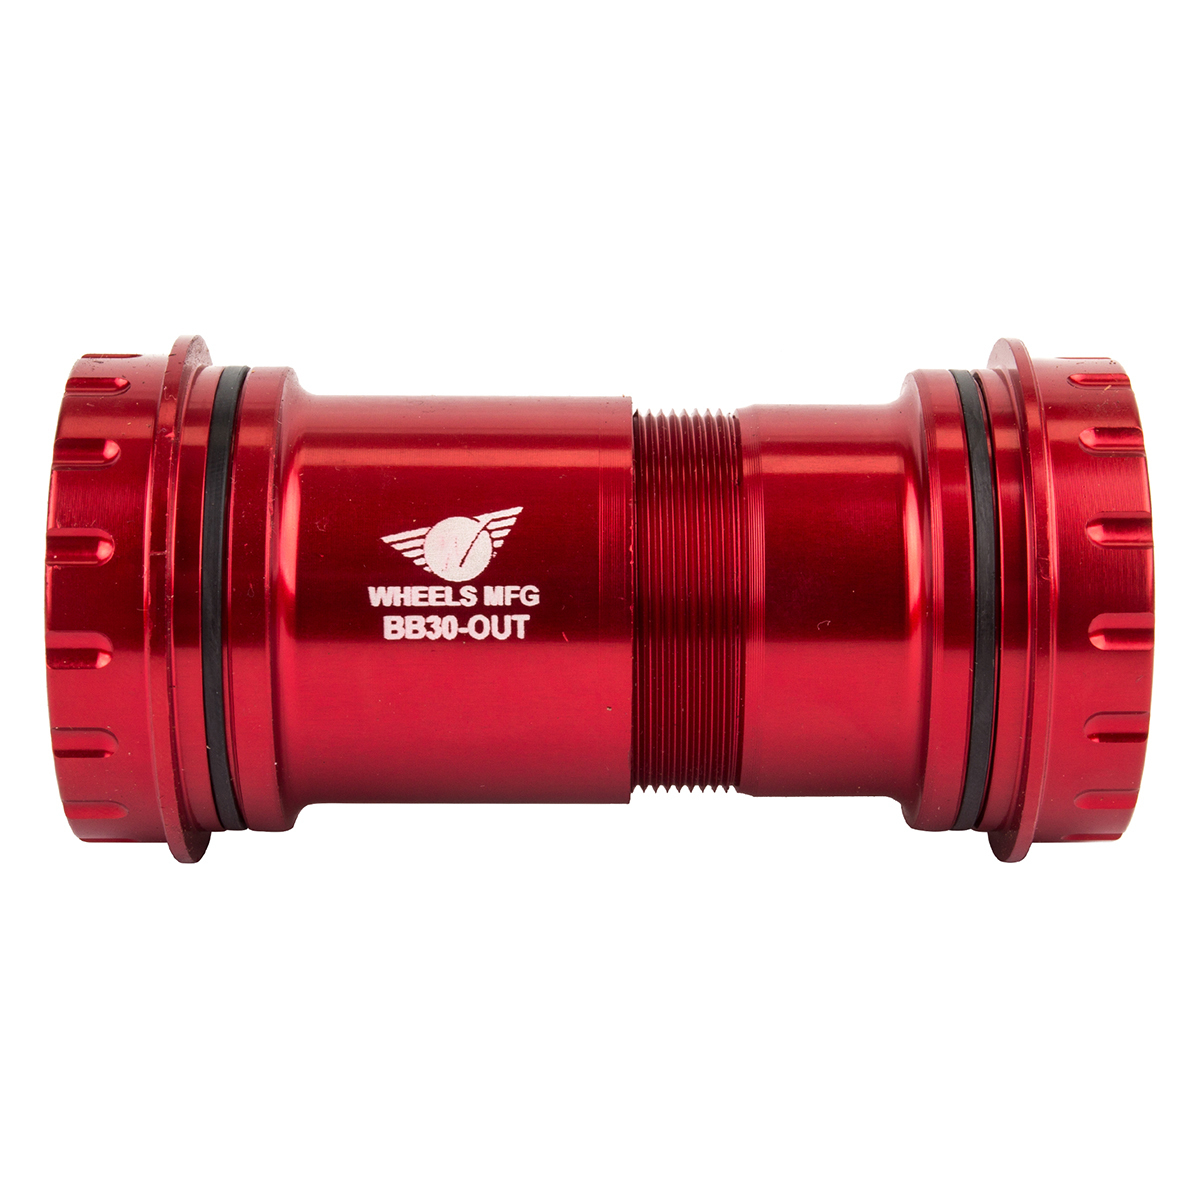 Wheels Manufacturing BB30 to Outboard Shimano Bottom Bracket Adapter